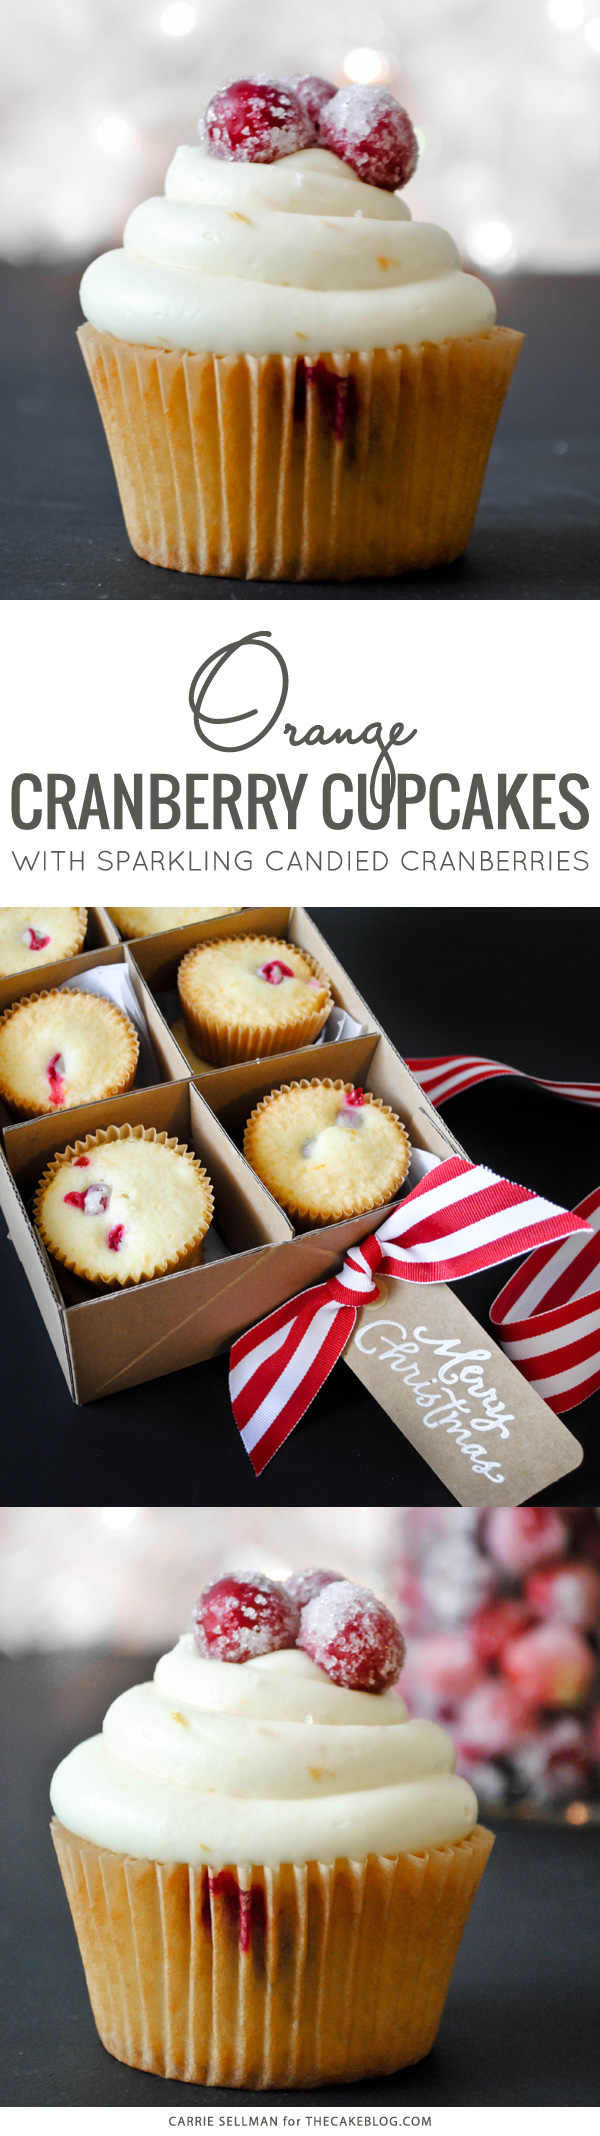 Cranberry Orange Cupcakes with sugared cranberries.  Perfect for the holidays and Christmas dessert | Carrie Sellman for TheCakeBlog.com